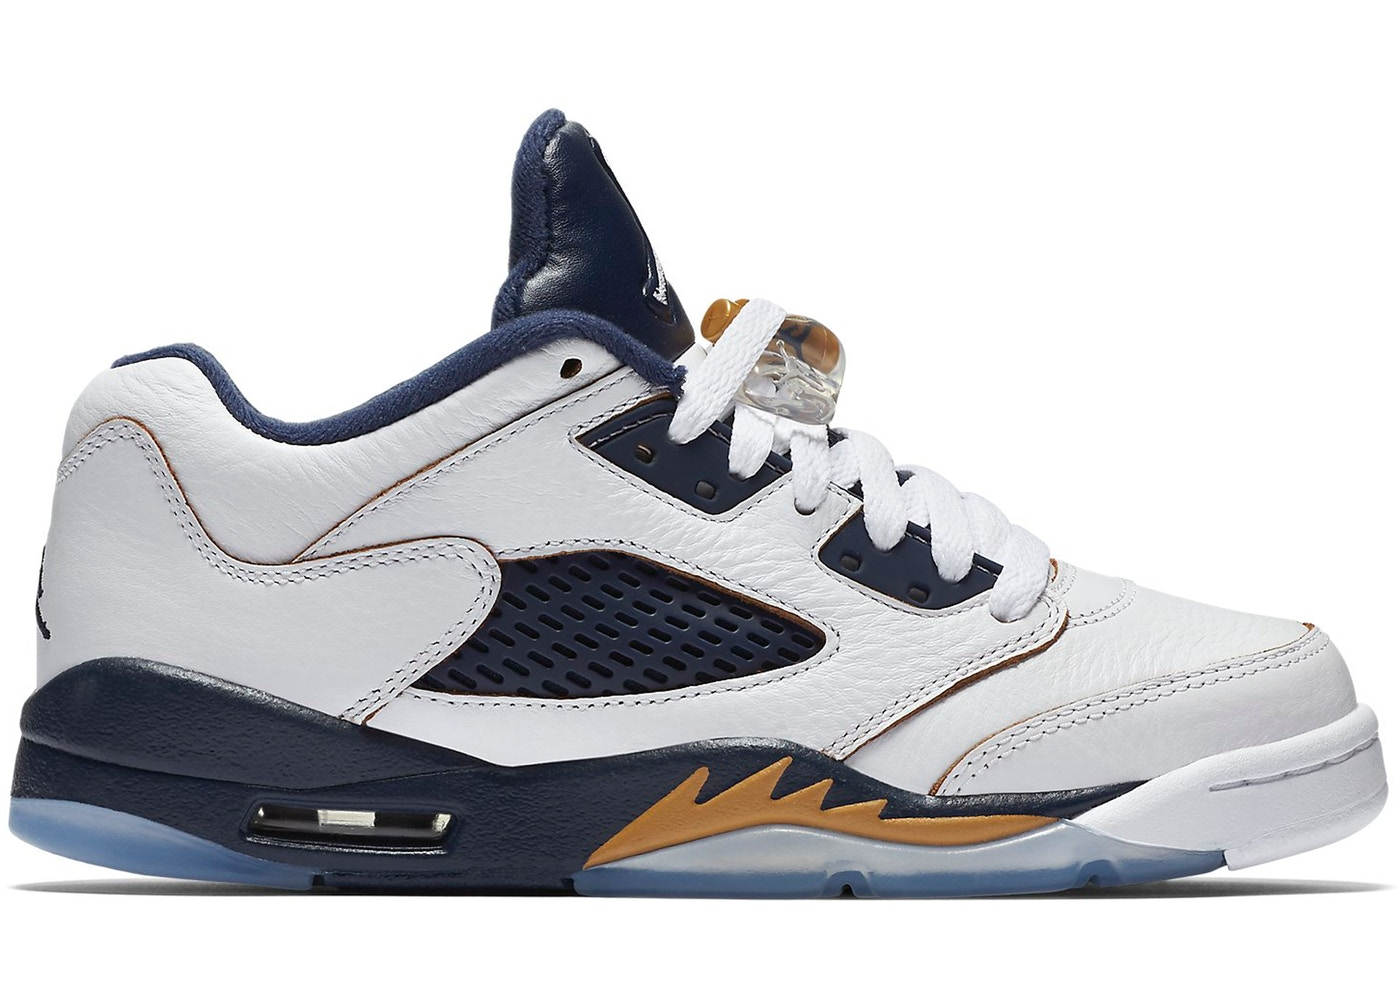 low priced 609bc 752d5 Jordan 5 Retro Low Dunk From Above (GS)